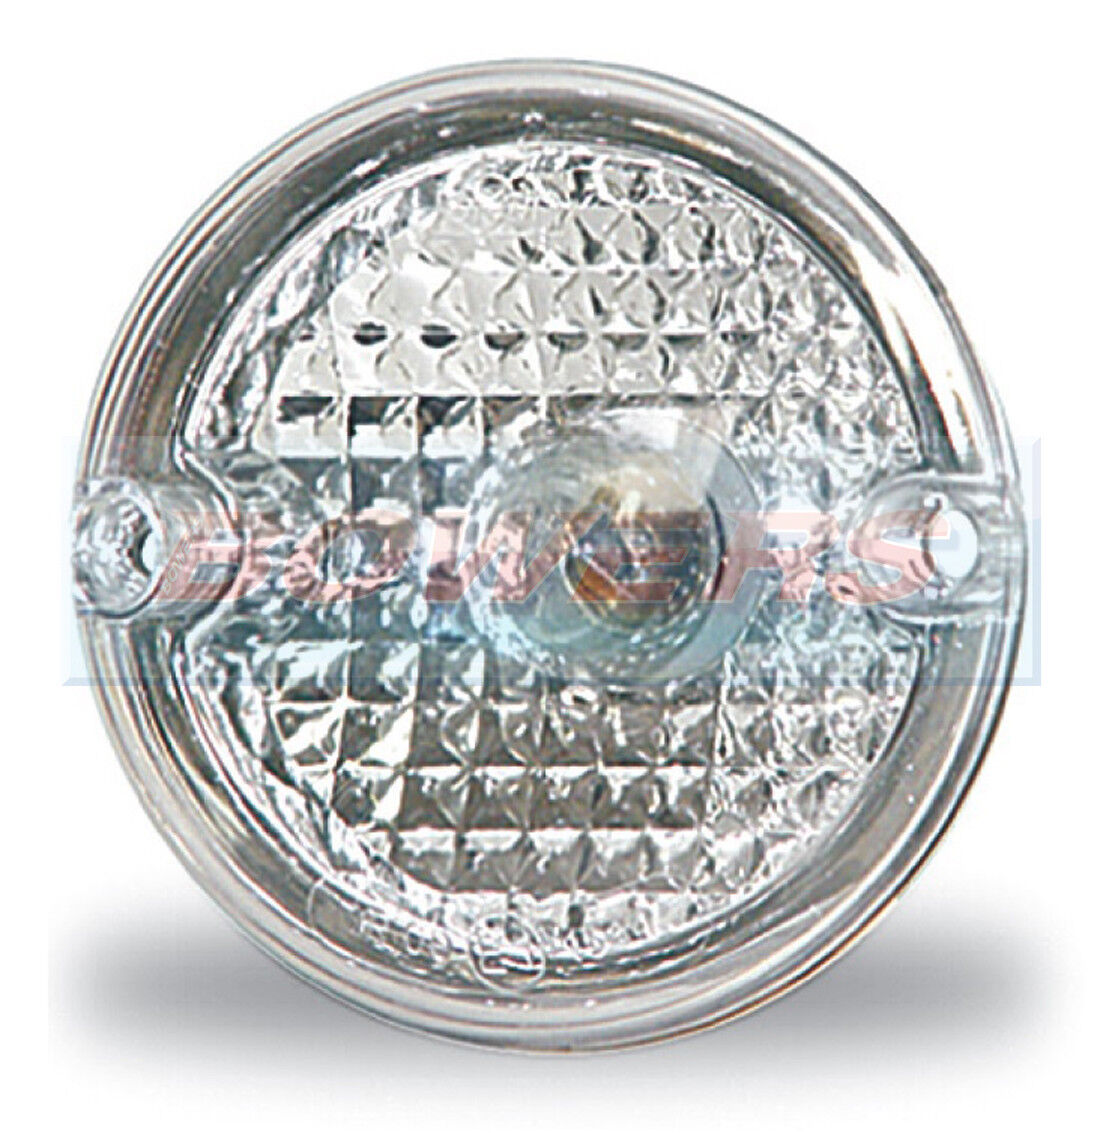 Aspock Round Point Rear 95 mm round Reverse Light Lamp For Brian James remorques